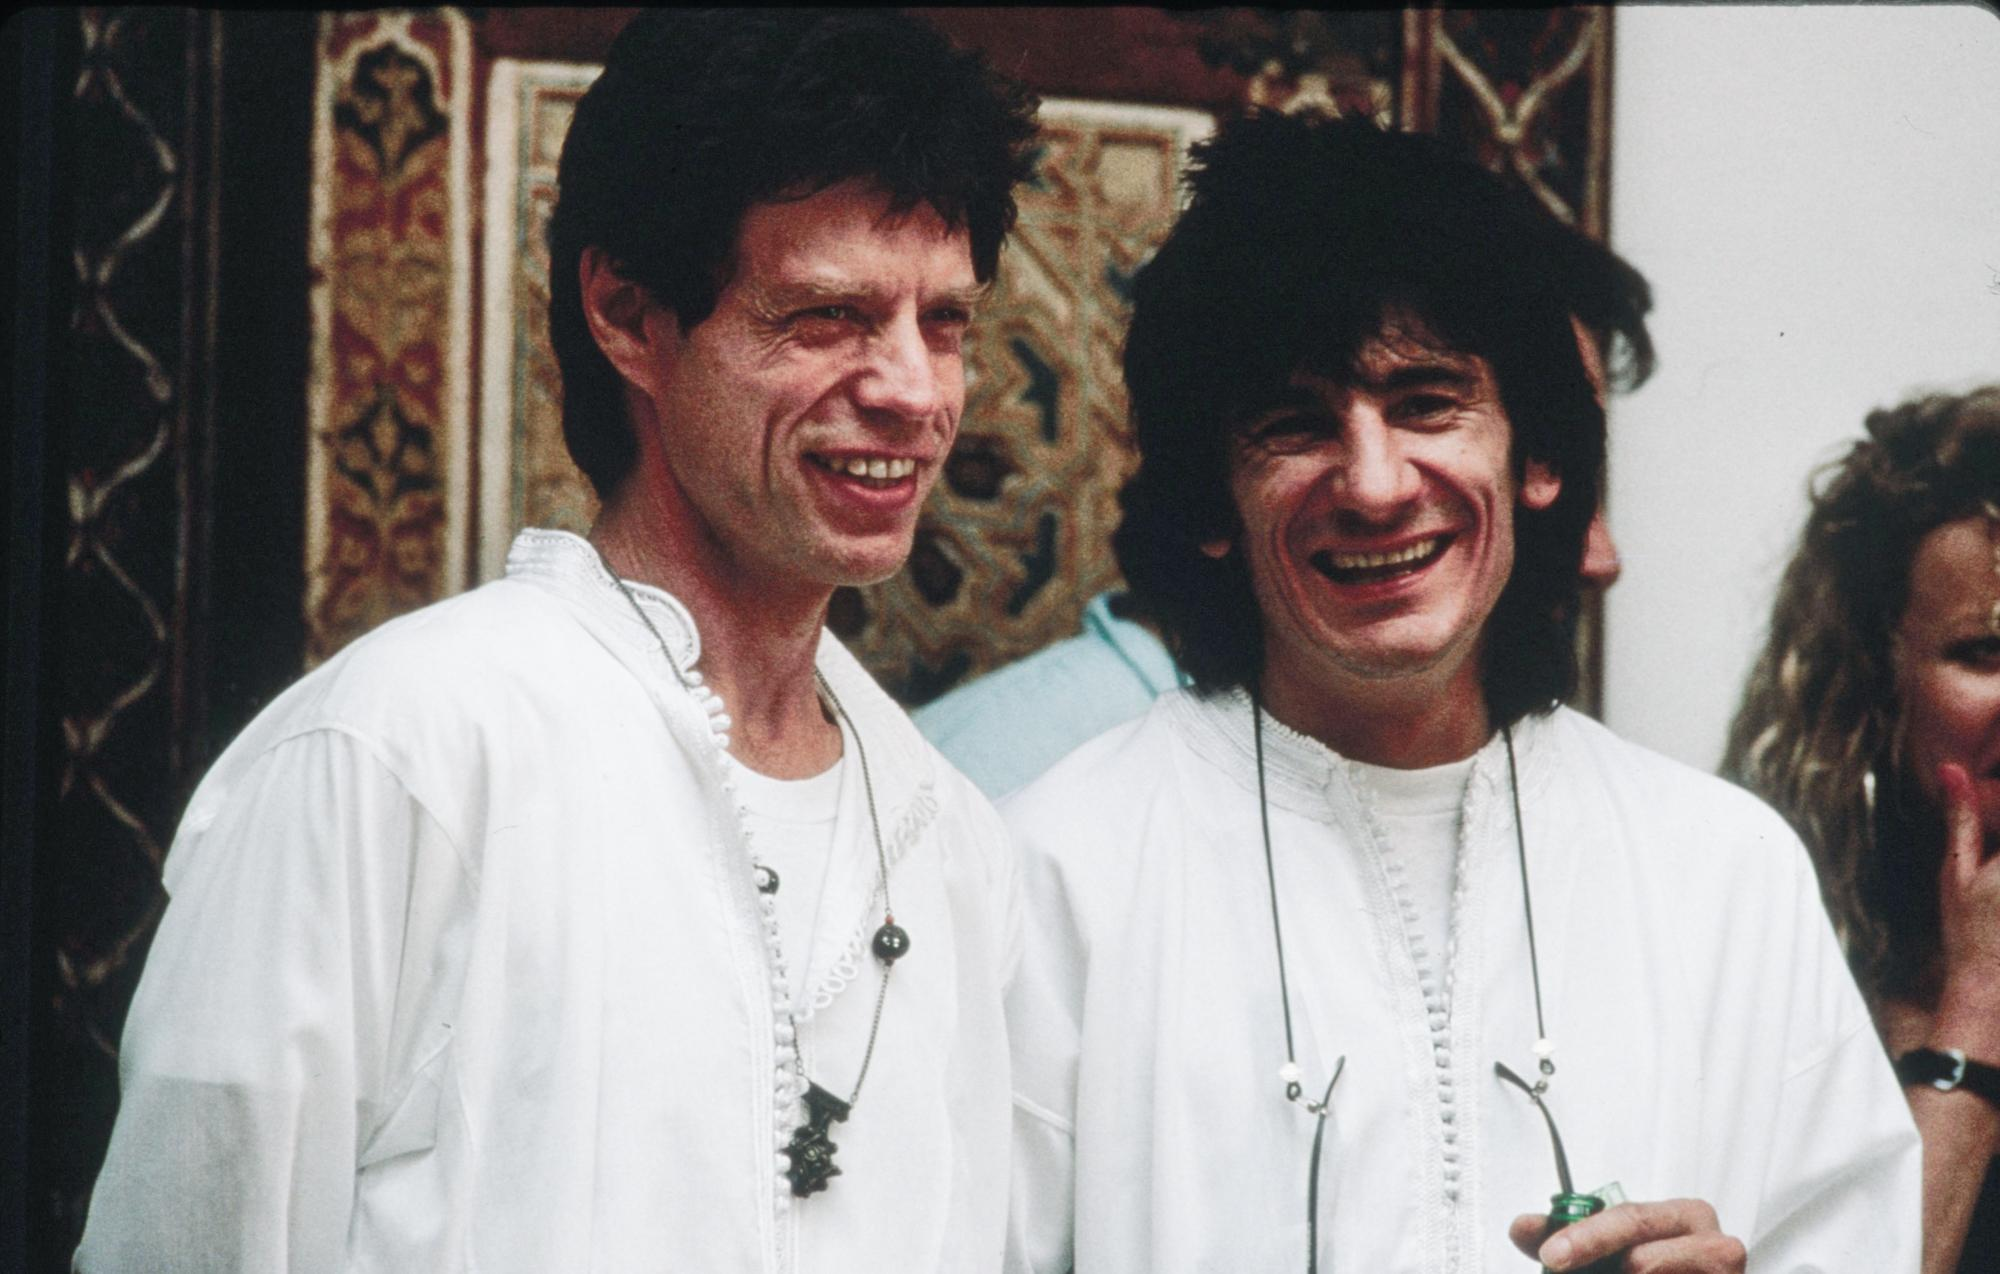 Mick and Ronnie